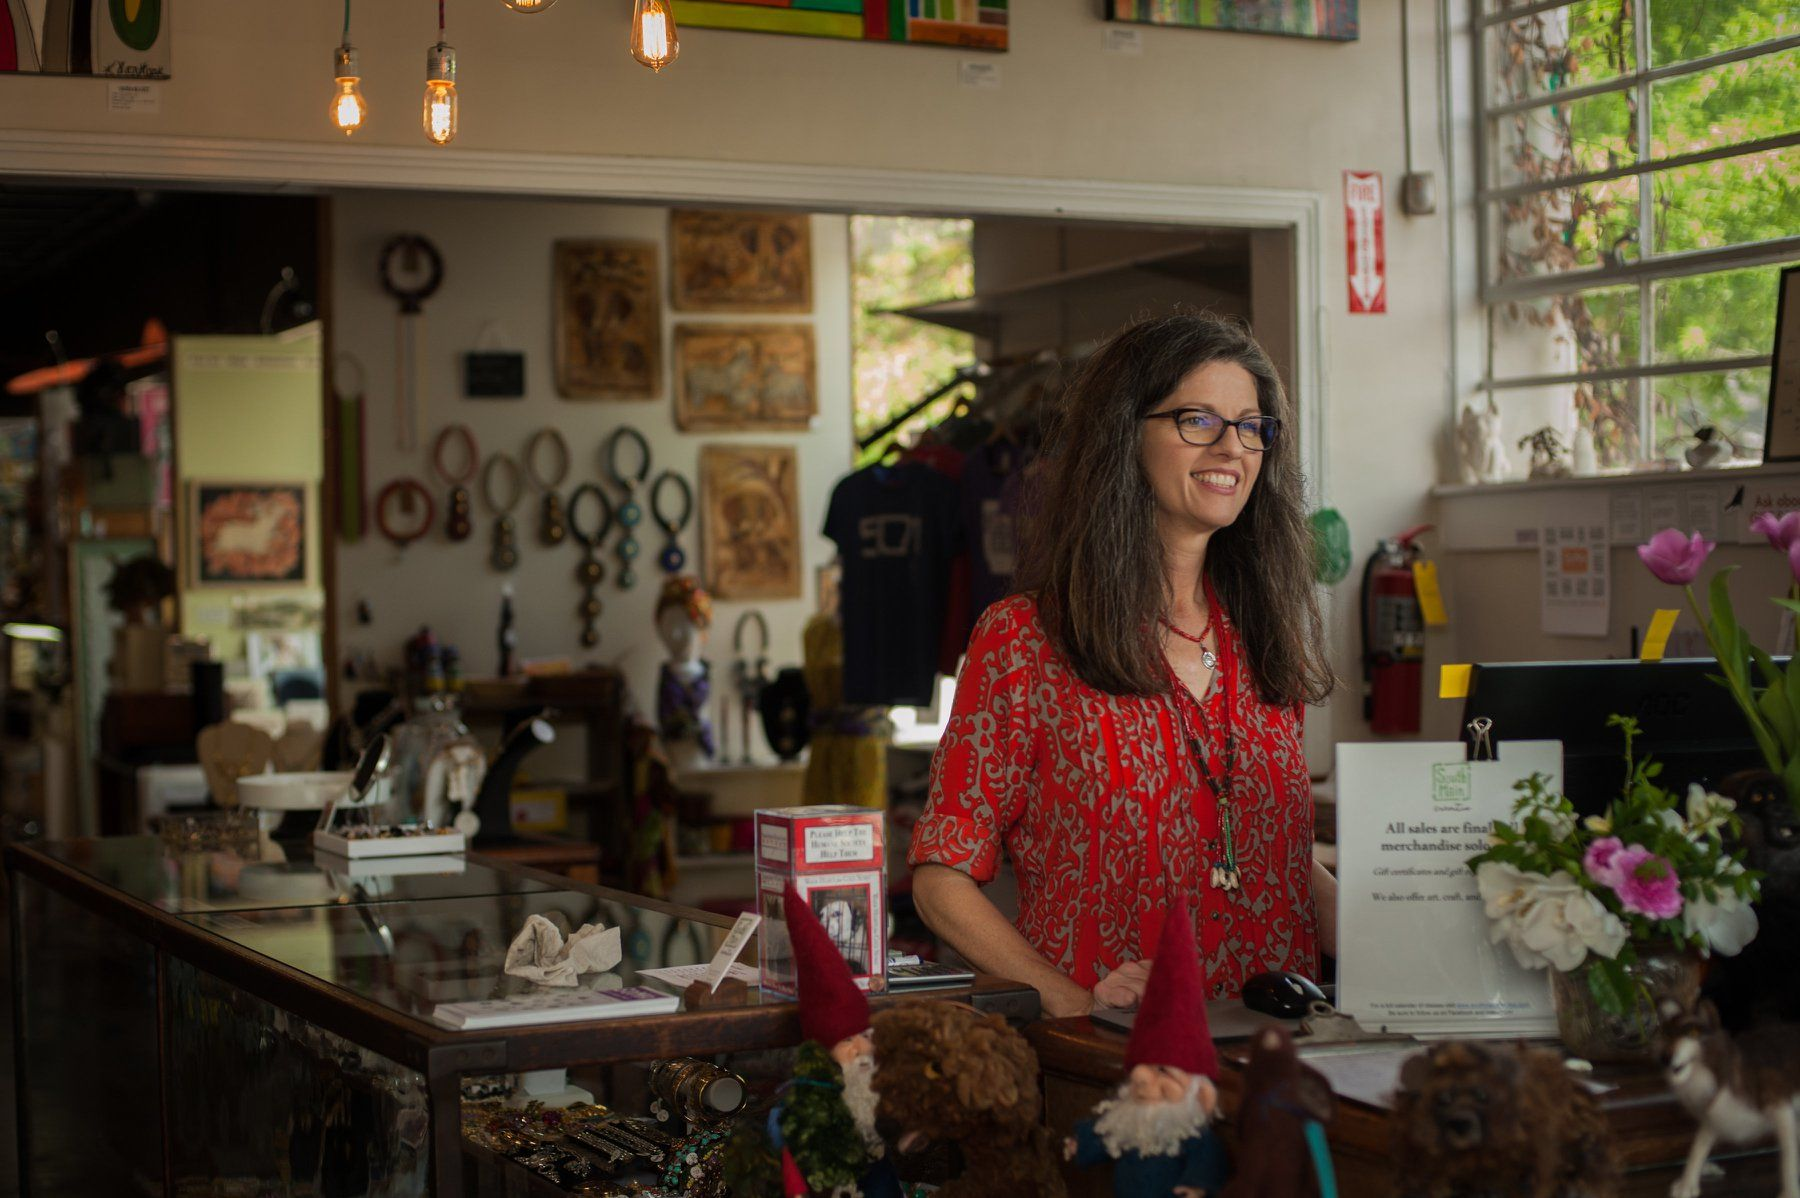 Valerie Wingers stands in the South Main Creative shop in historic SoMa district of Little Rock, Arkansas.